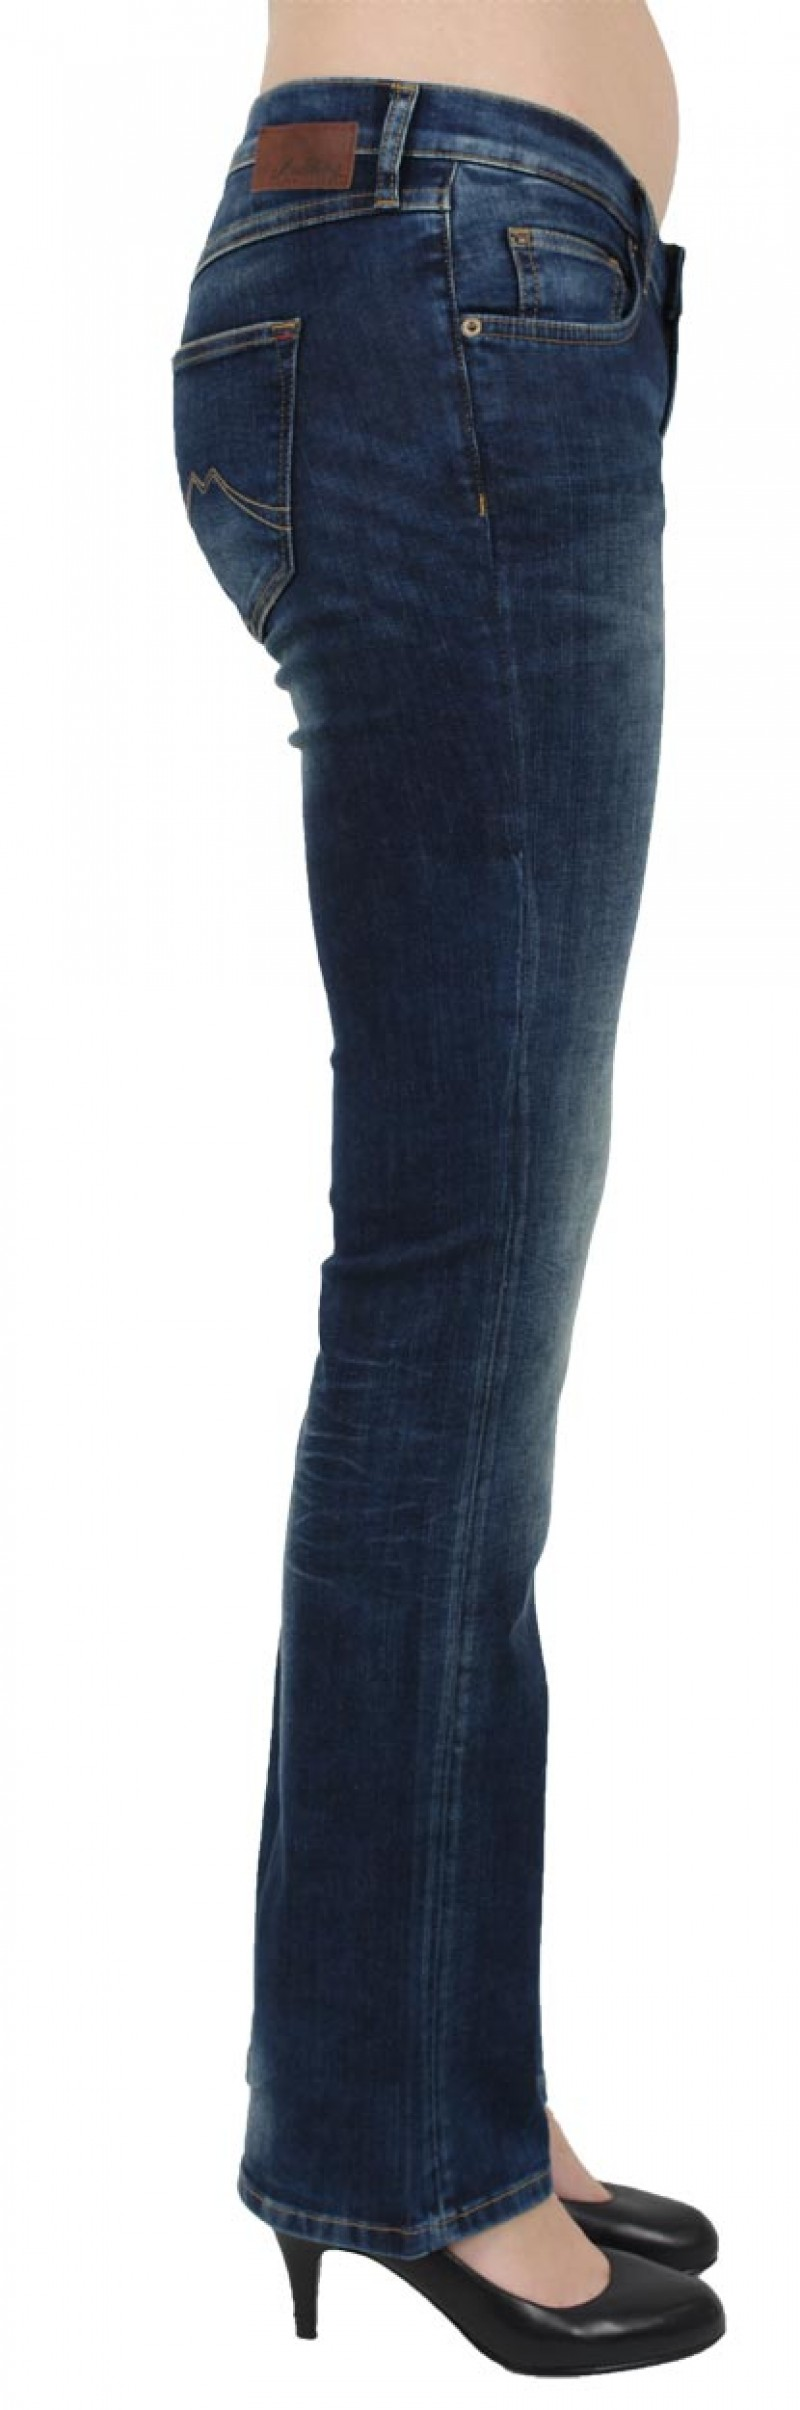 MUSTANG Gina Boot Jeans - Dark Used v